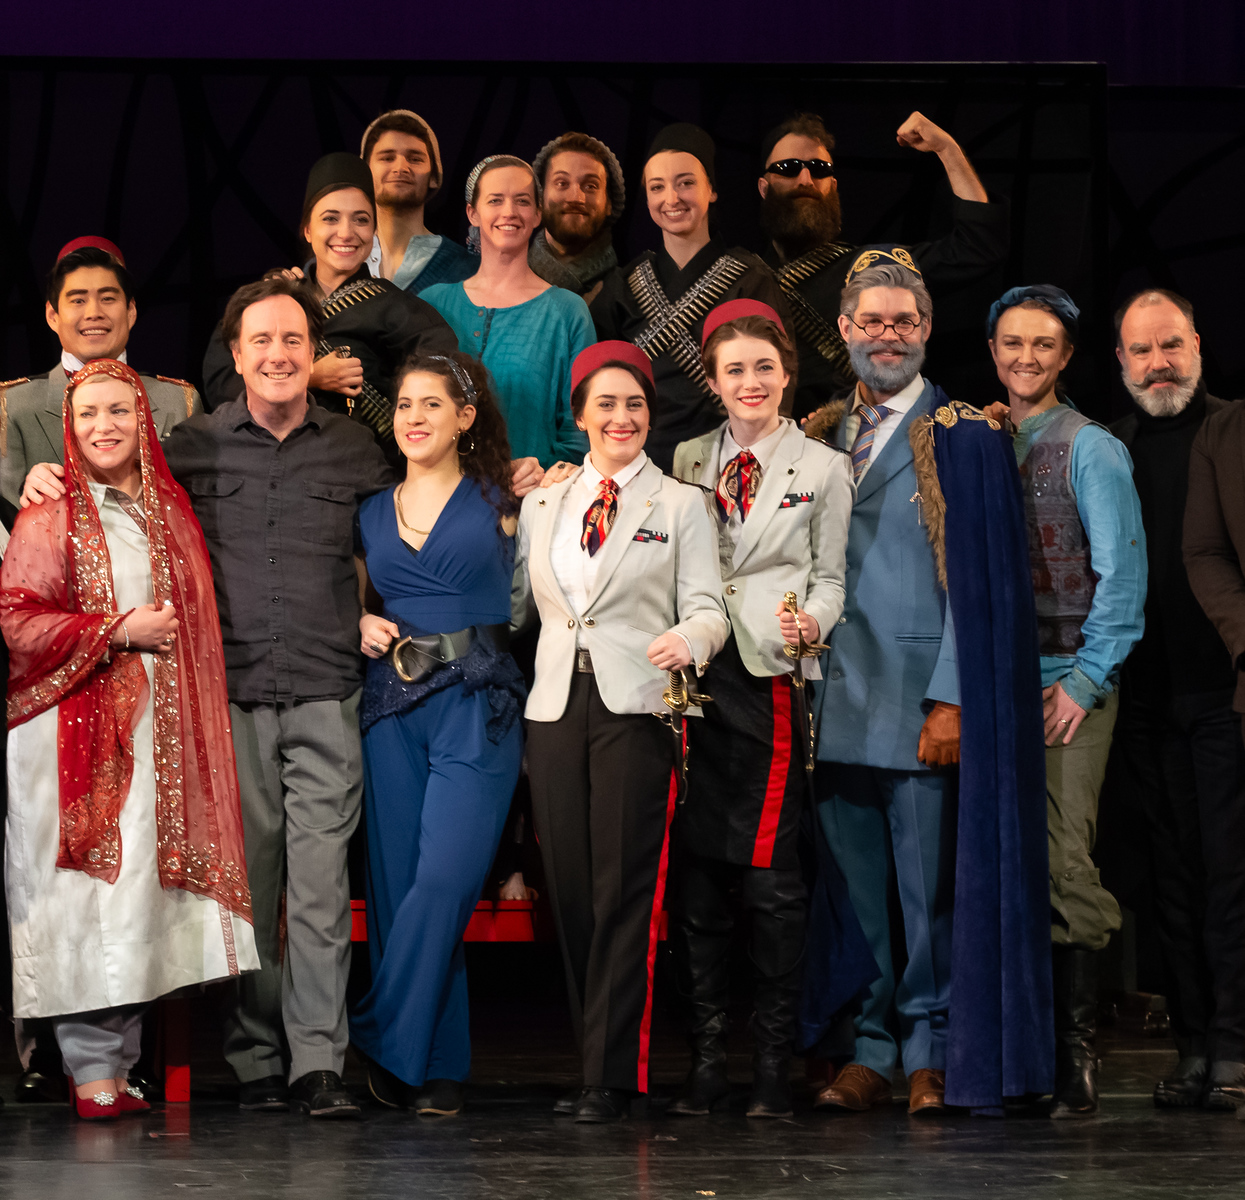 Photo of cast and dancers with Conductor Ryan Brown (front row, second from left), who is also Opera Lfayette's Founder and Artistic Director, and Director and Choreographer Seán Curran (end of front row on right).